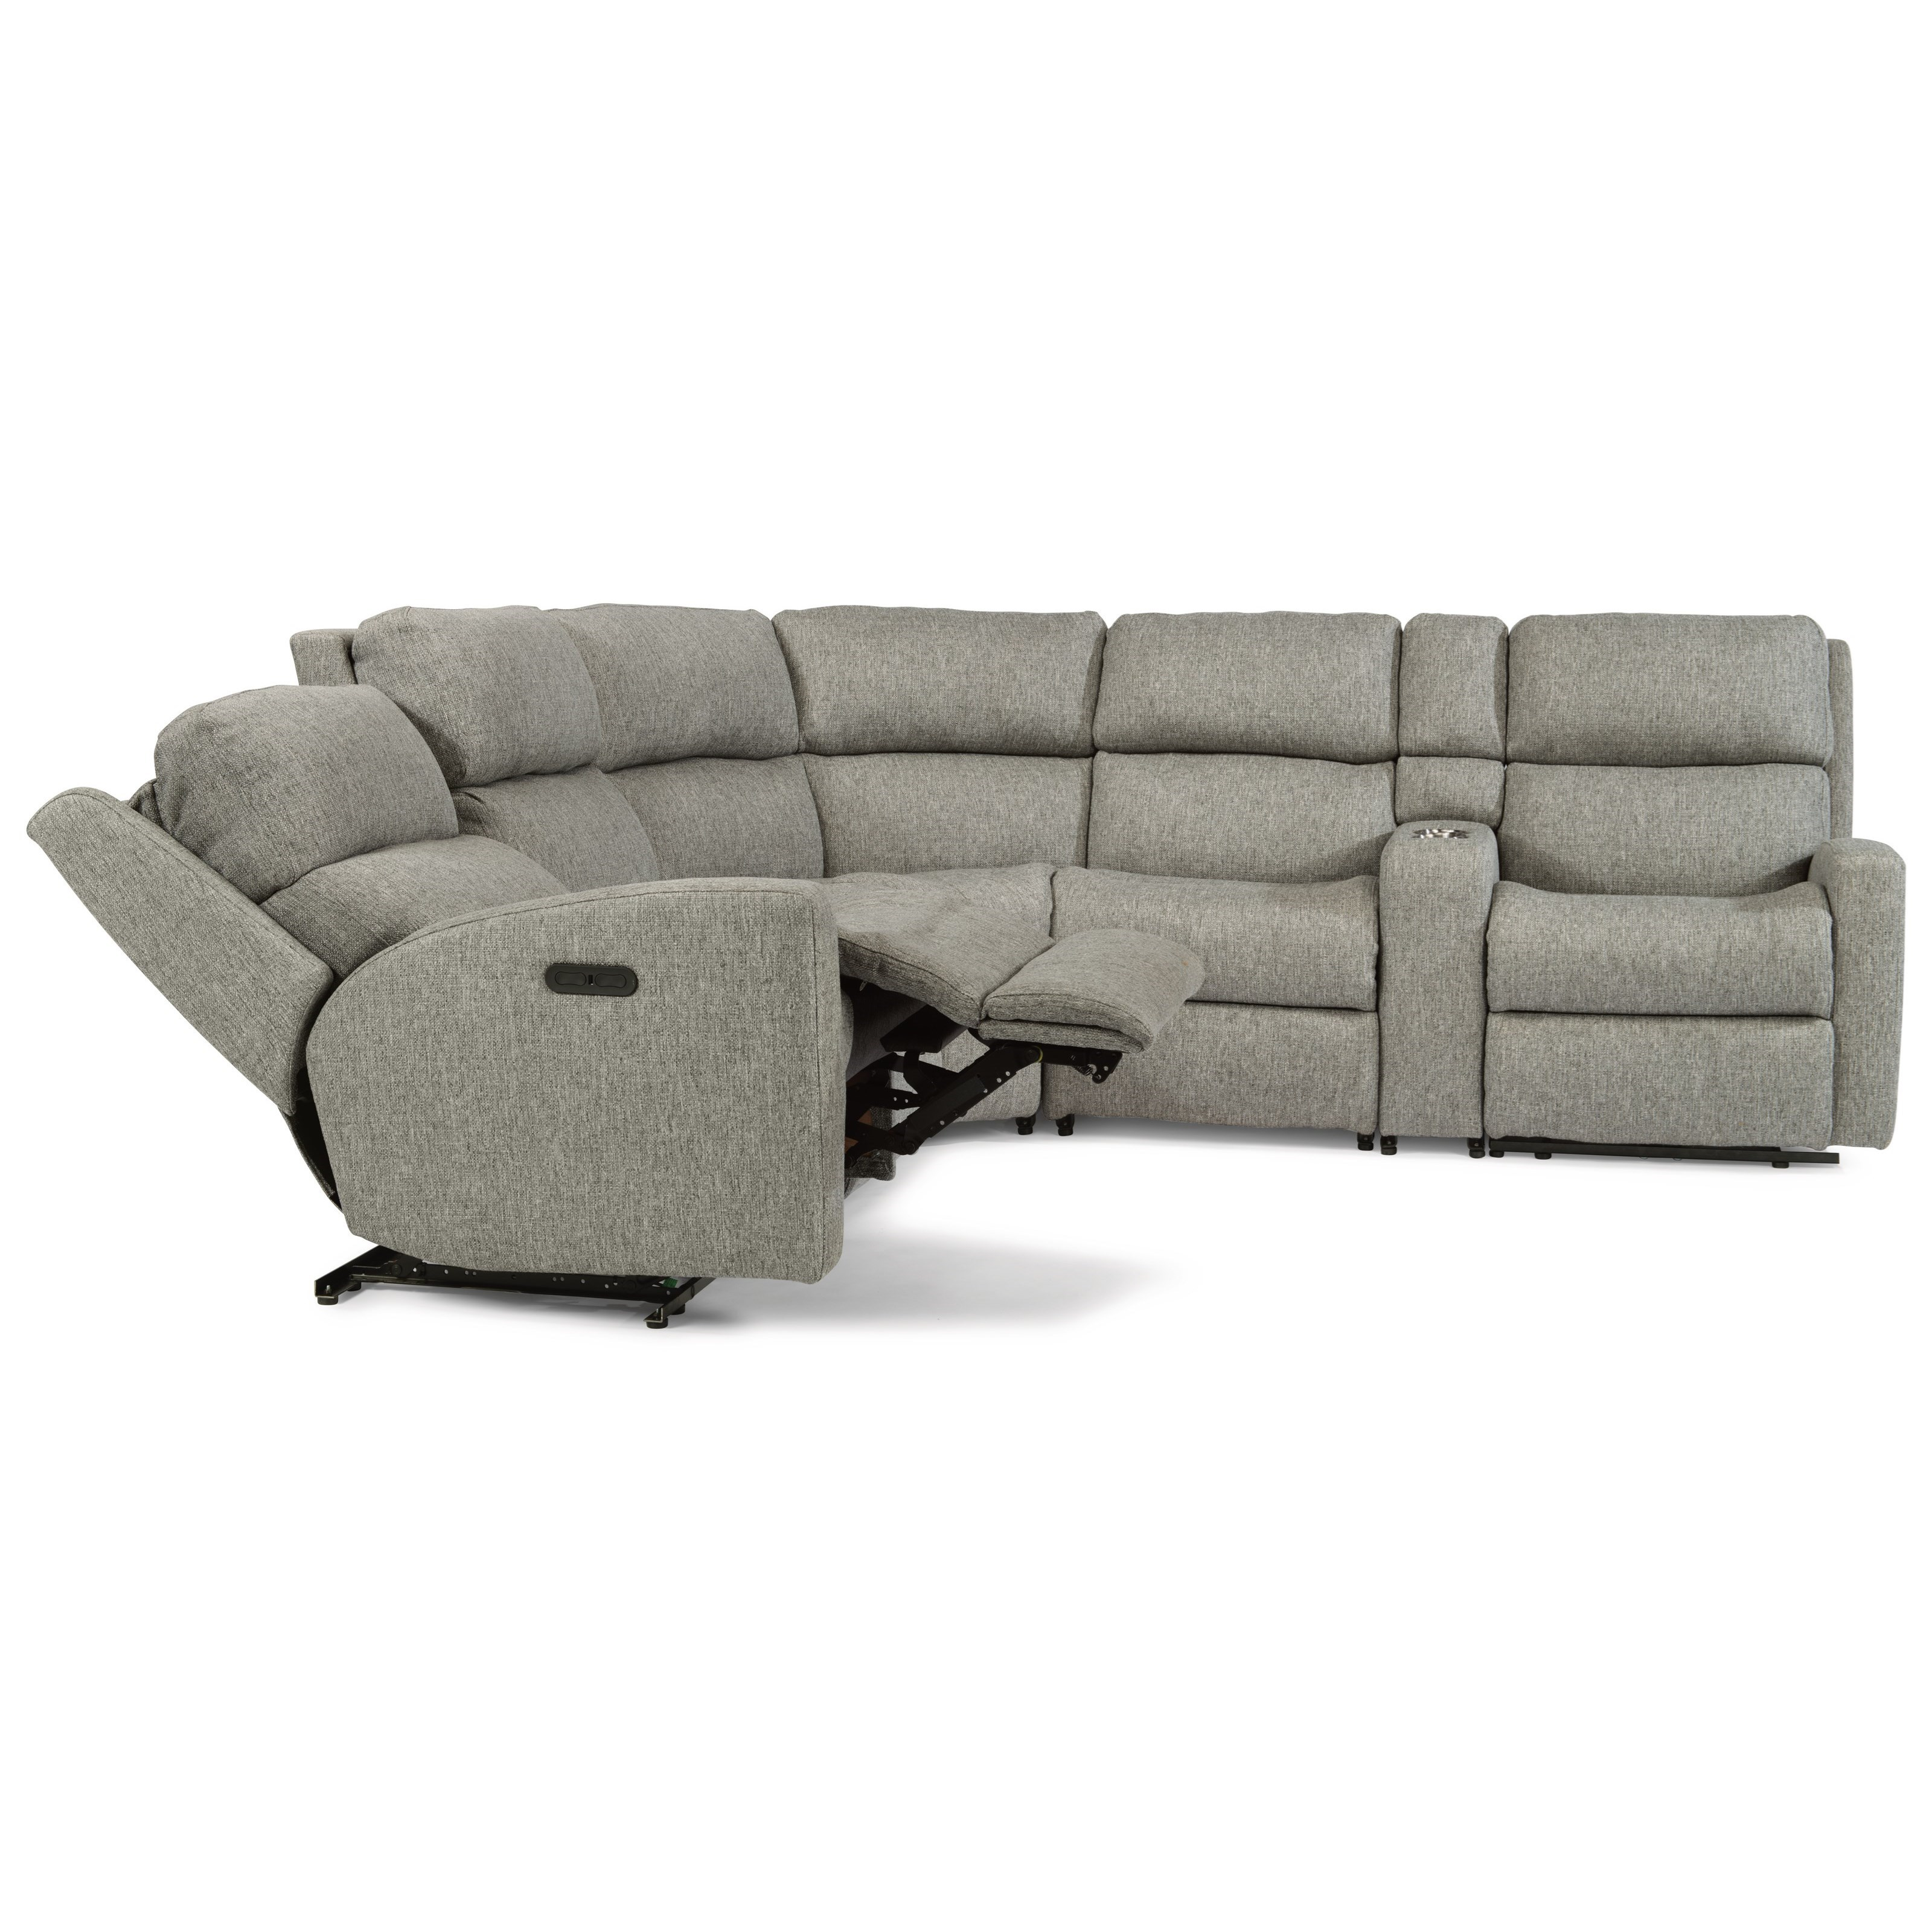 Catalina 6 Piece Reclining Sectional by Flexsteel at Pilgrim Furniture City